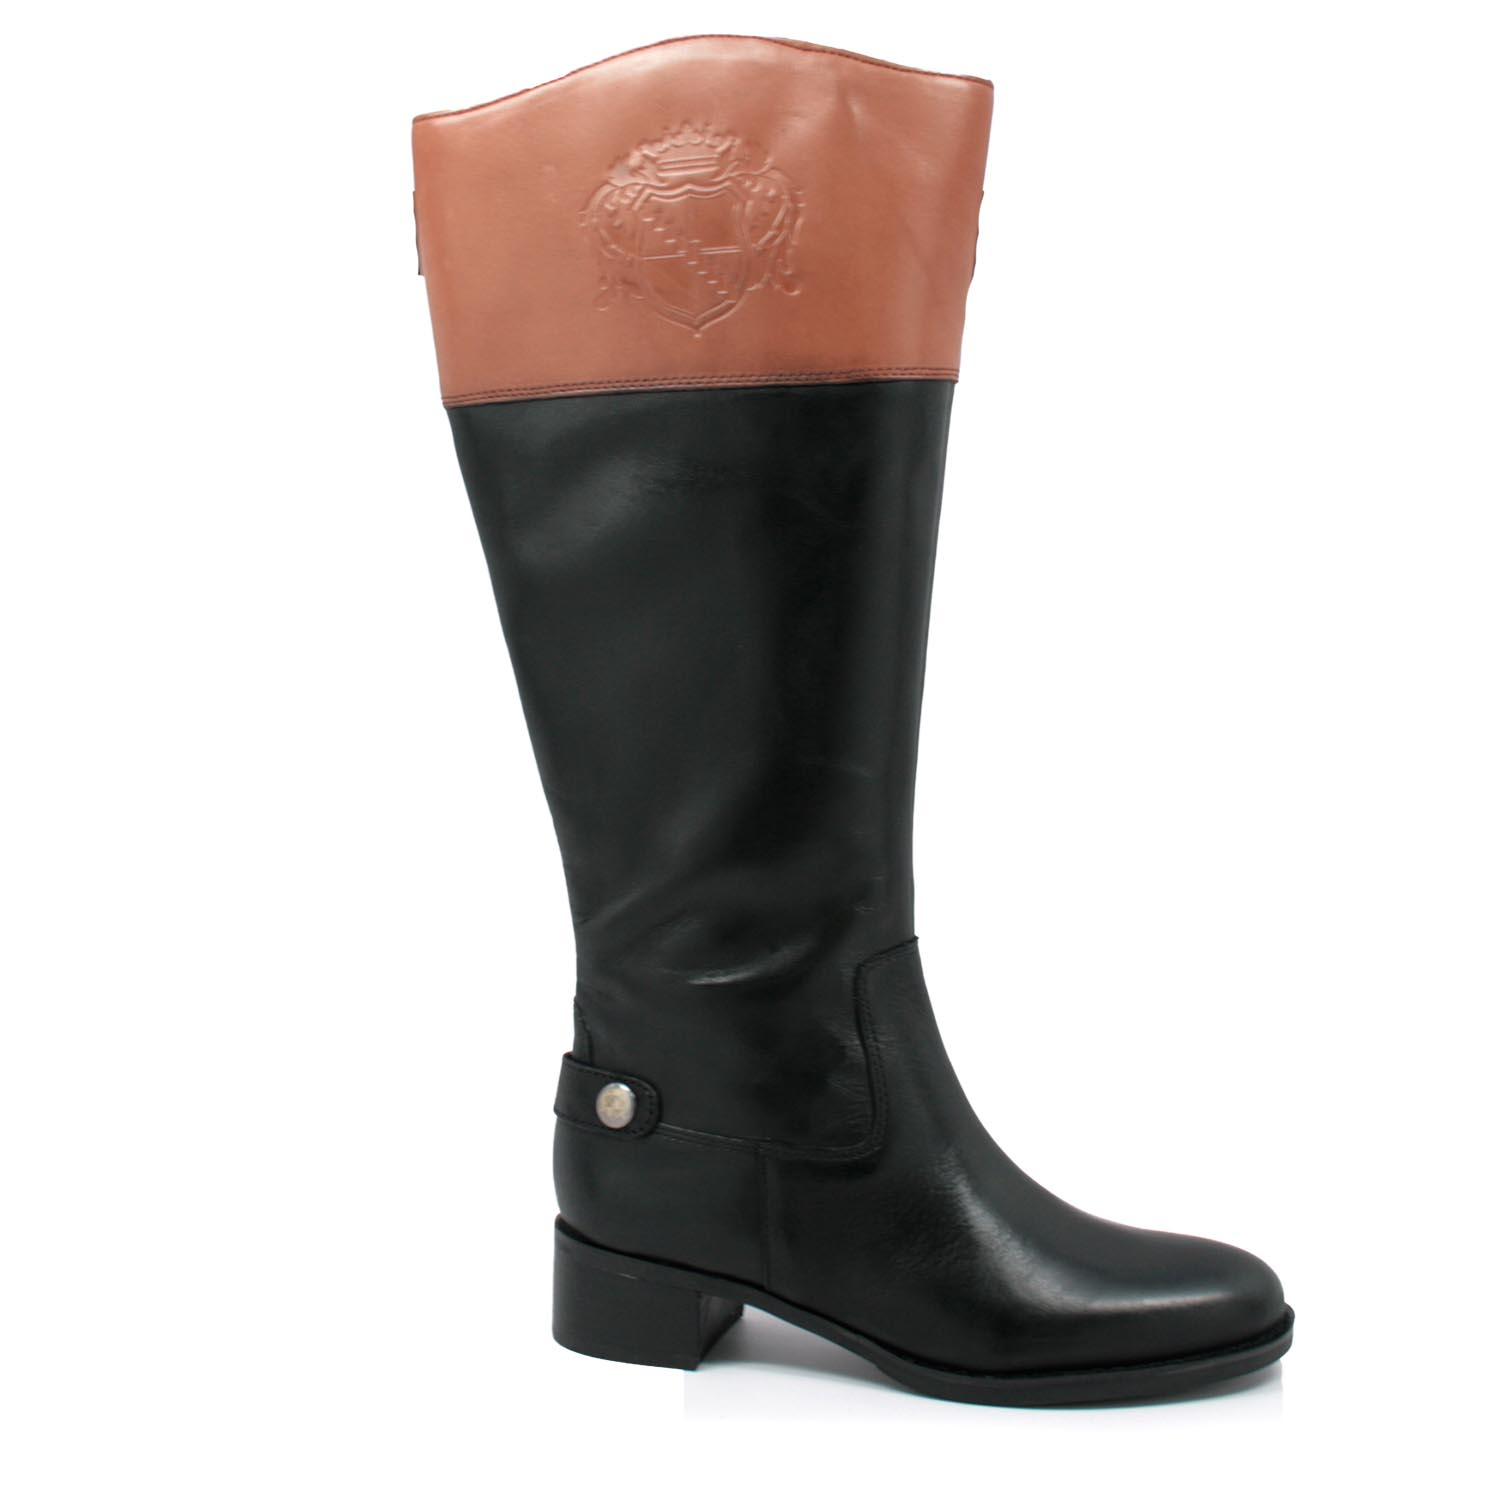 Free shipping BOTH ways on wide calf riding boots, from our vast selection of styles. Fast delivery, and 24/7/ real-person service with a smile. Click or call